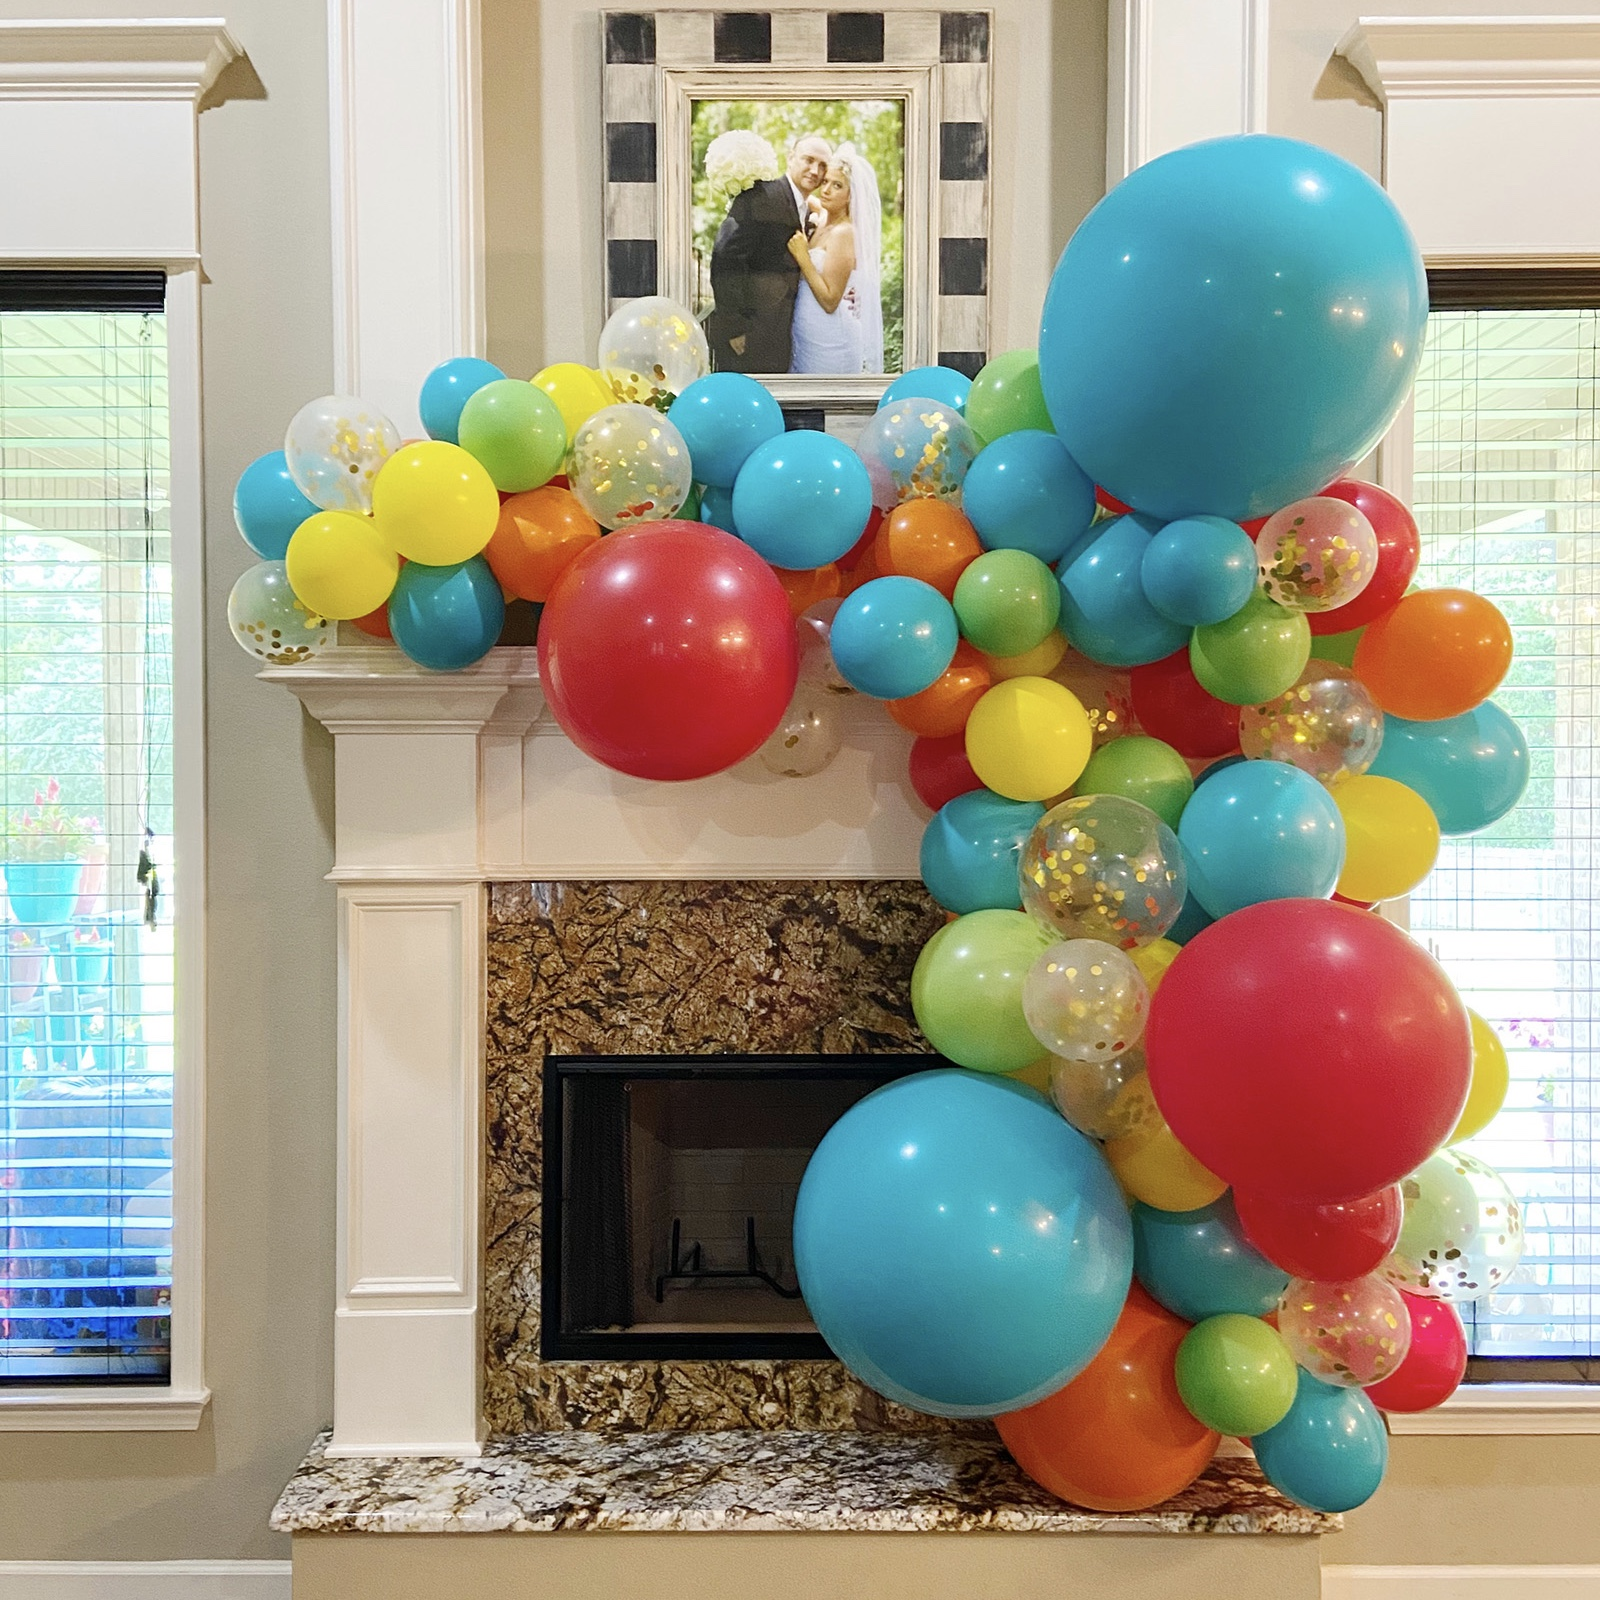 Make a mantle gorgeous with a balloon garland installation like this one for a Benton birthday with confetti balloons from Just Peachy.